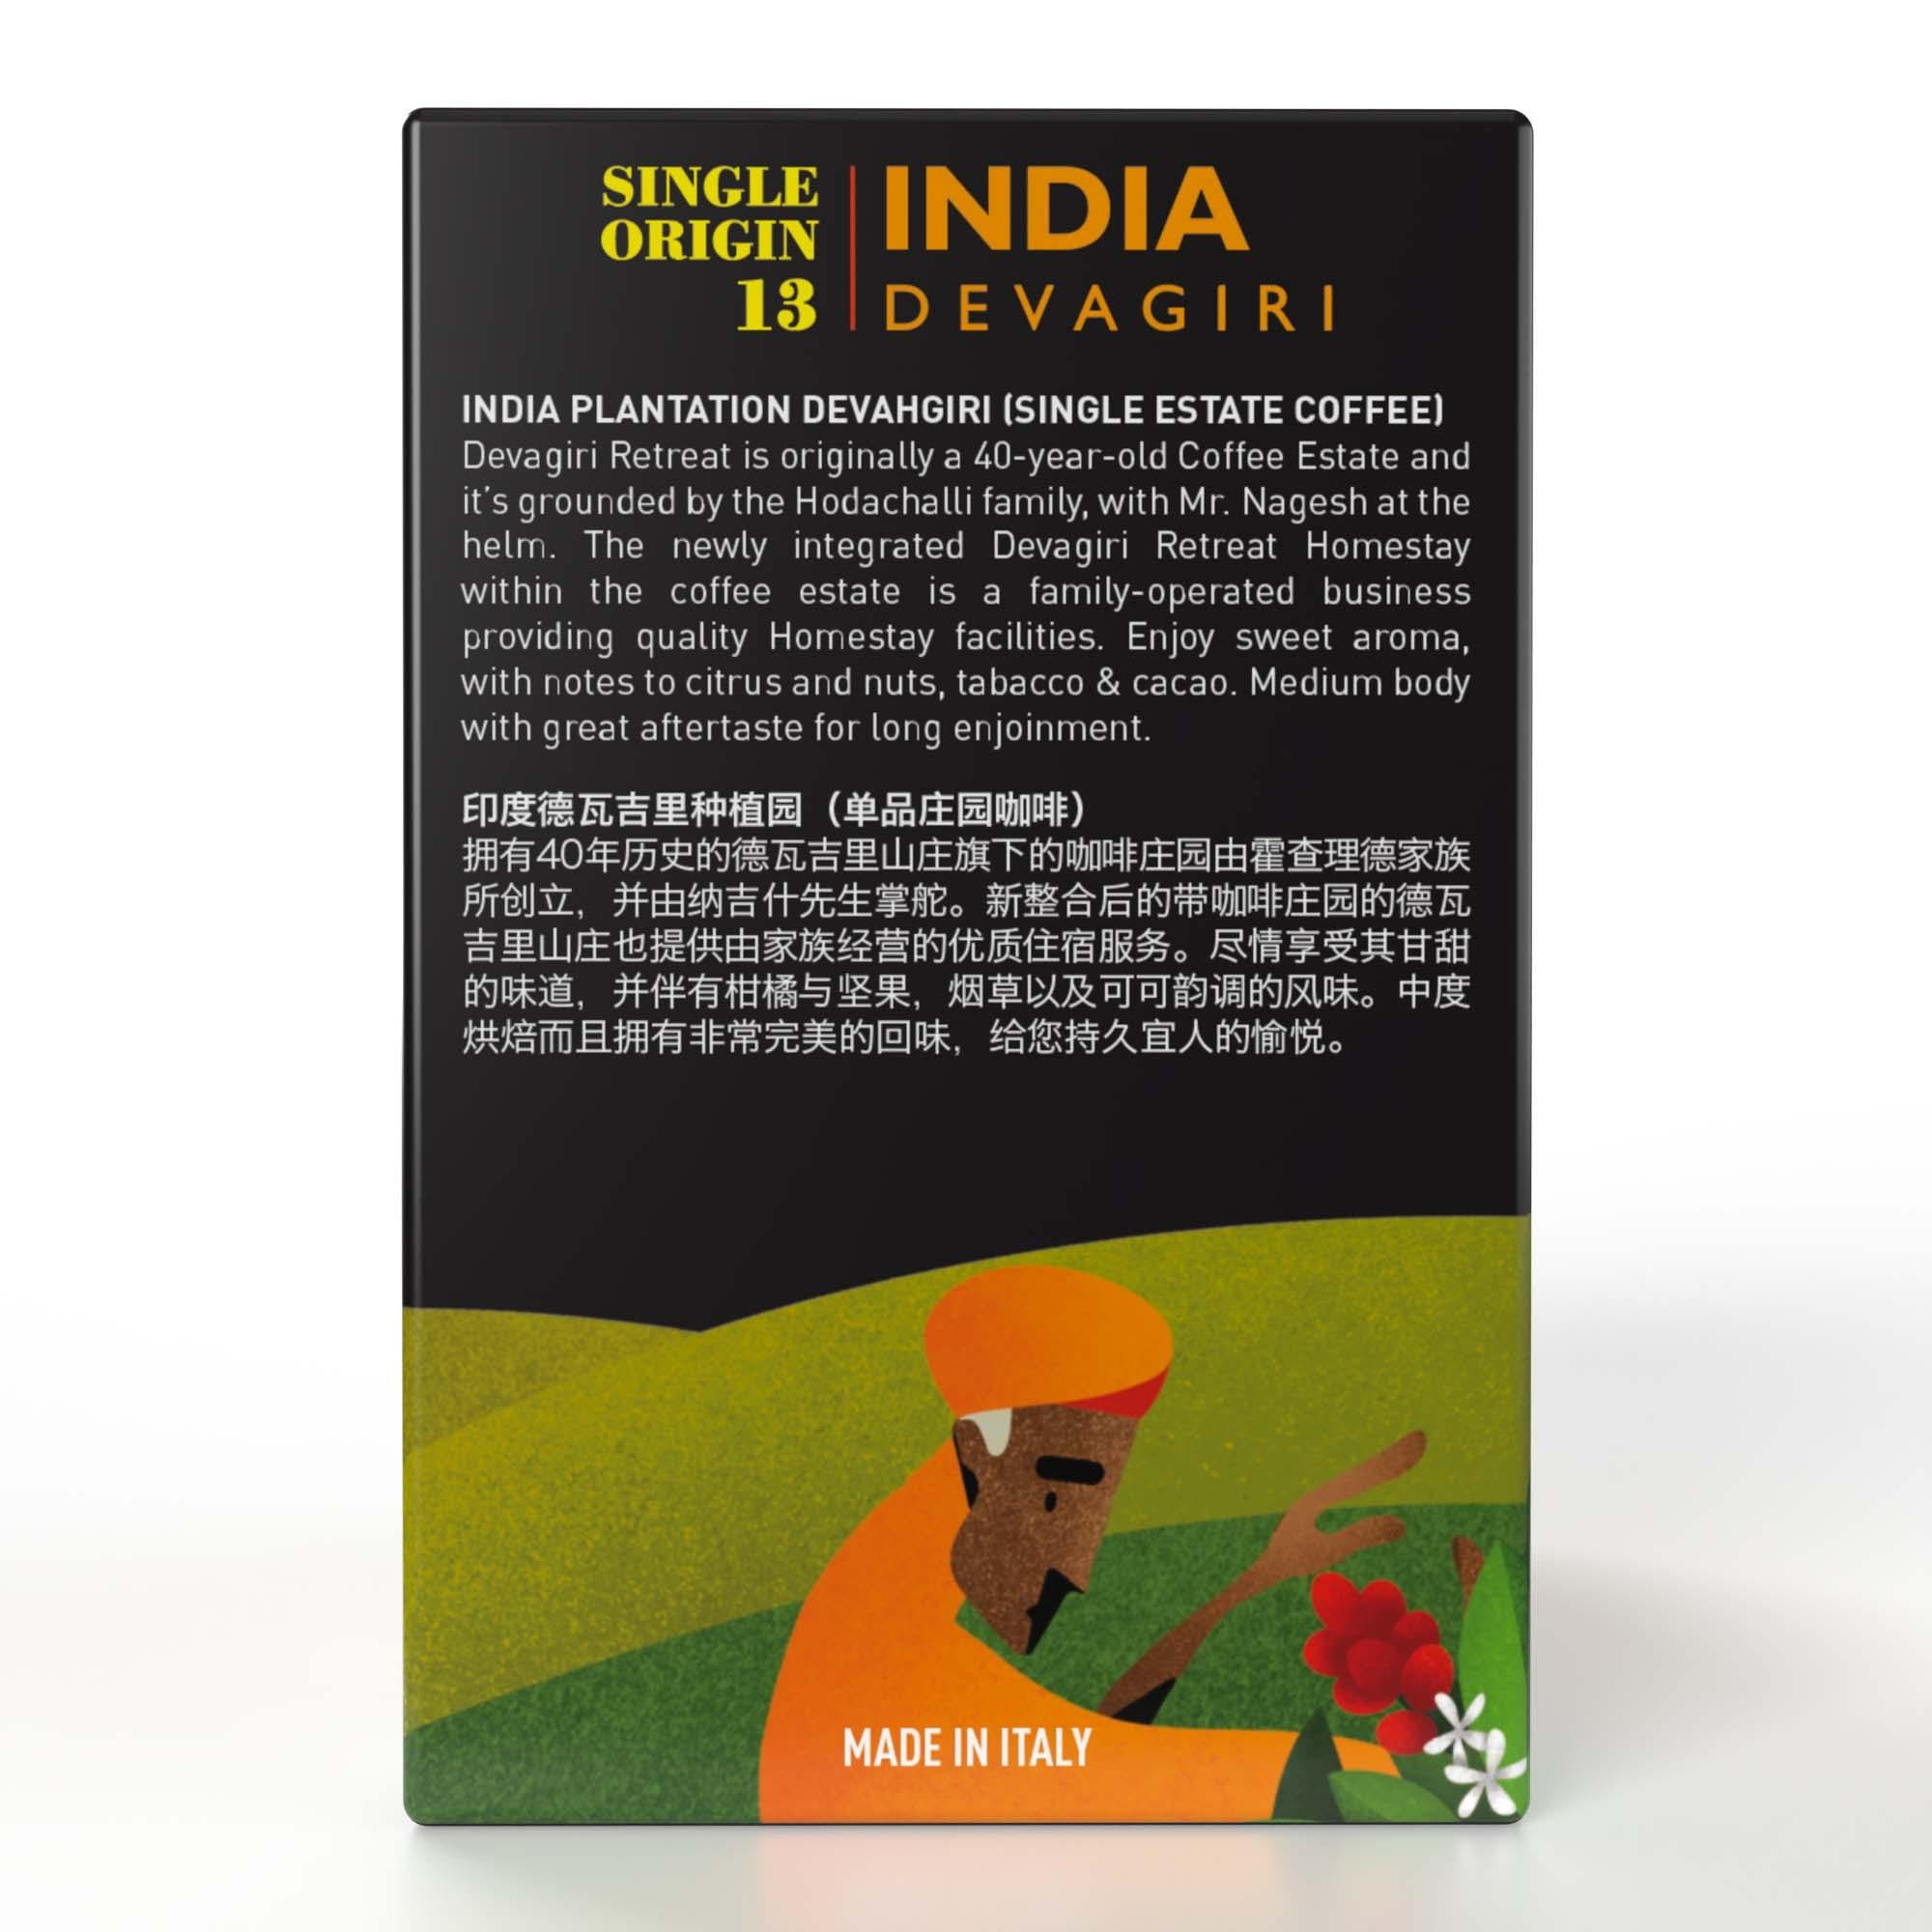 INDIA Devagiri | Single Origin N.13 - Mikah Coffee